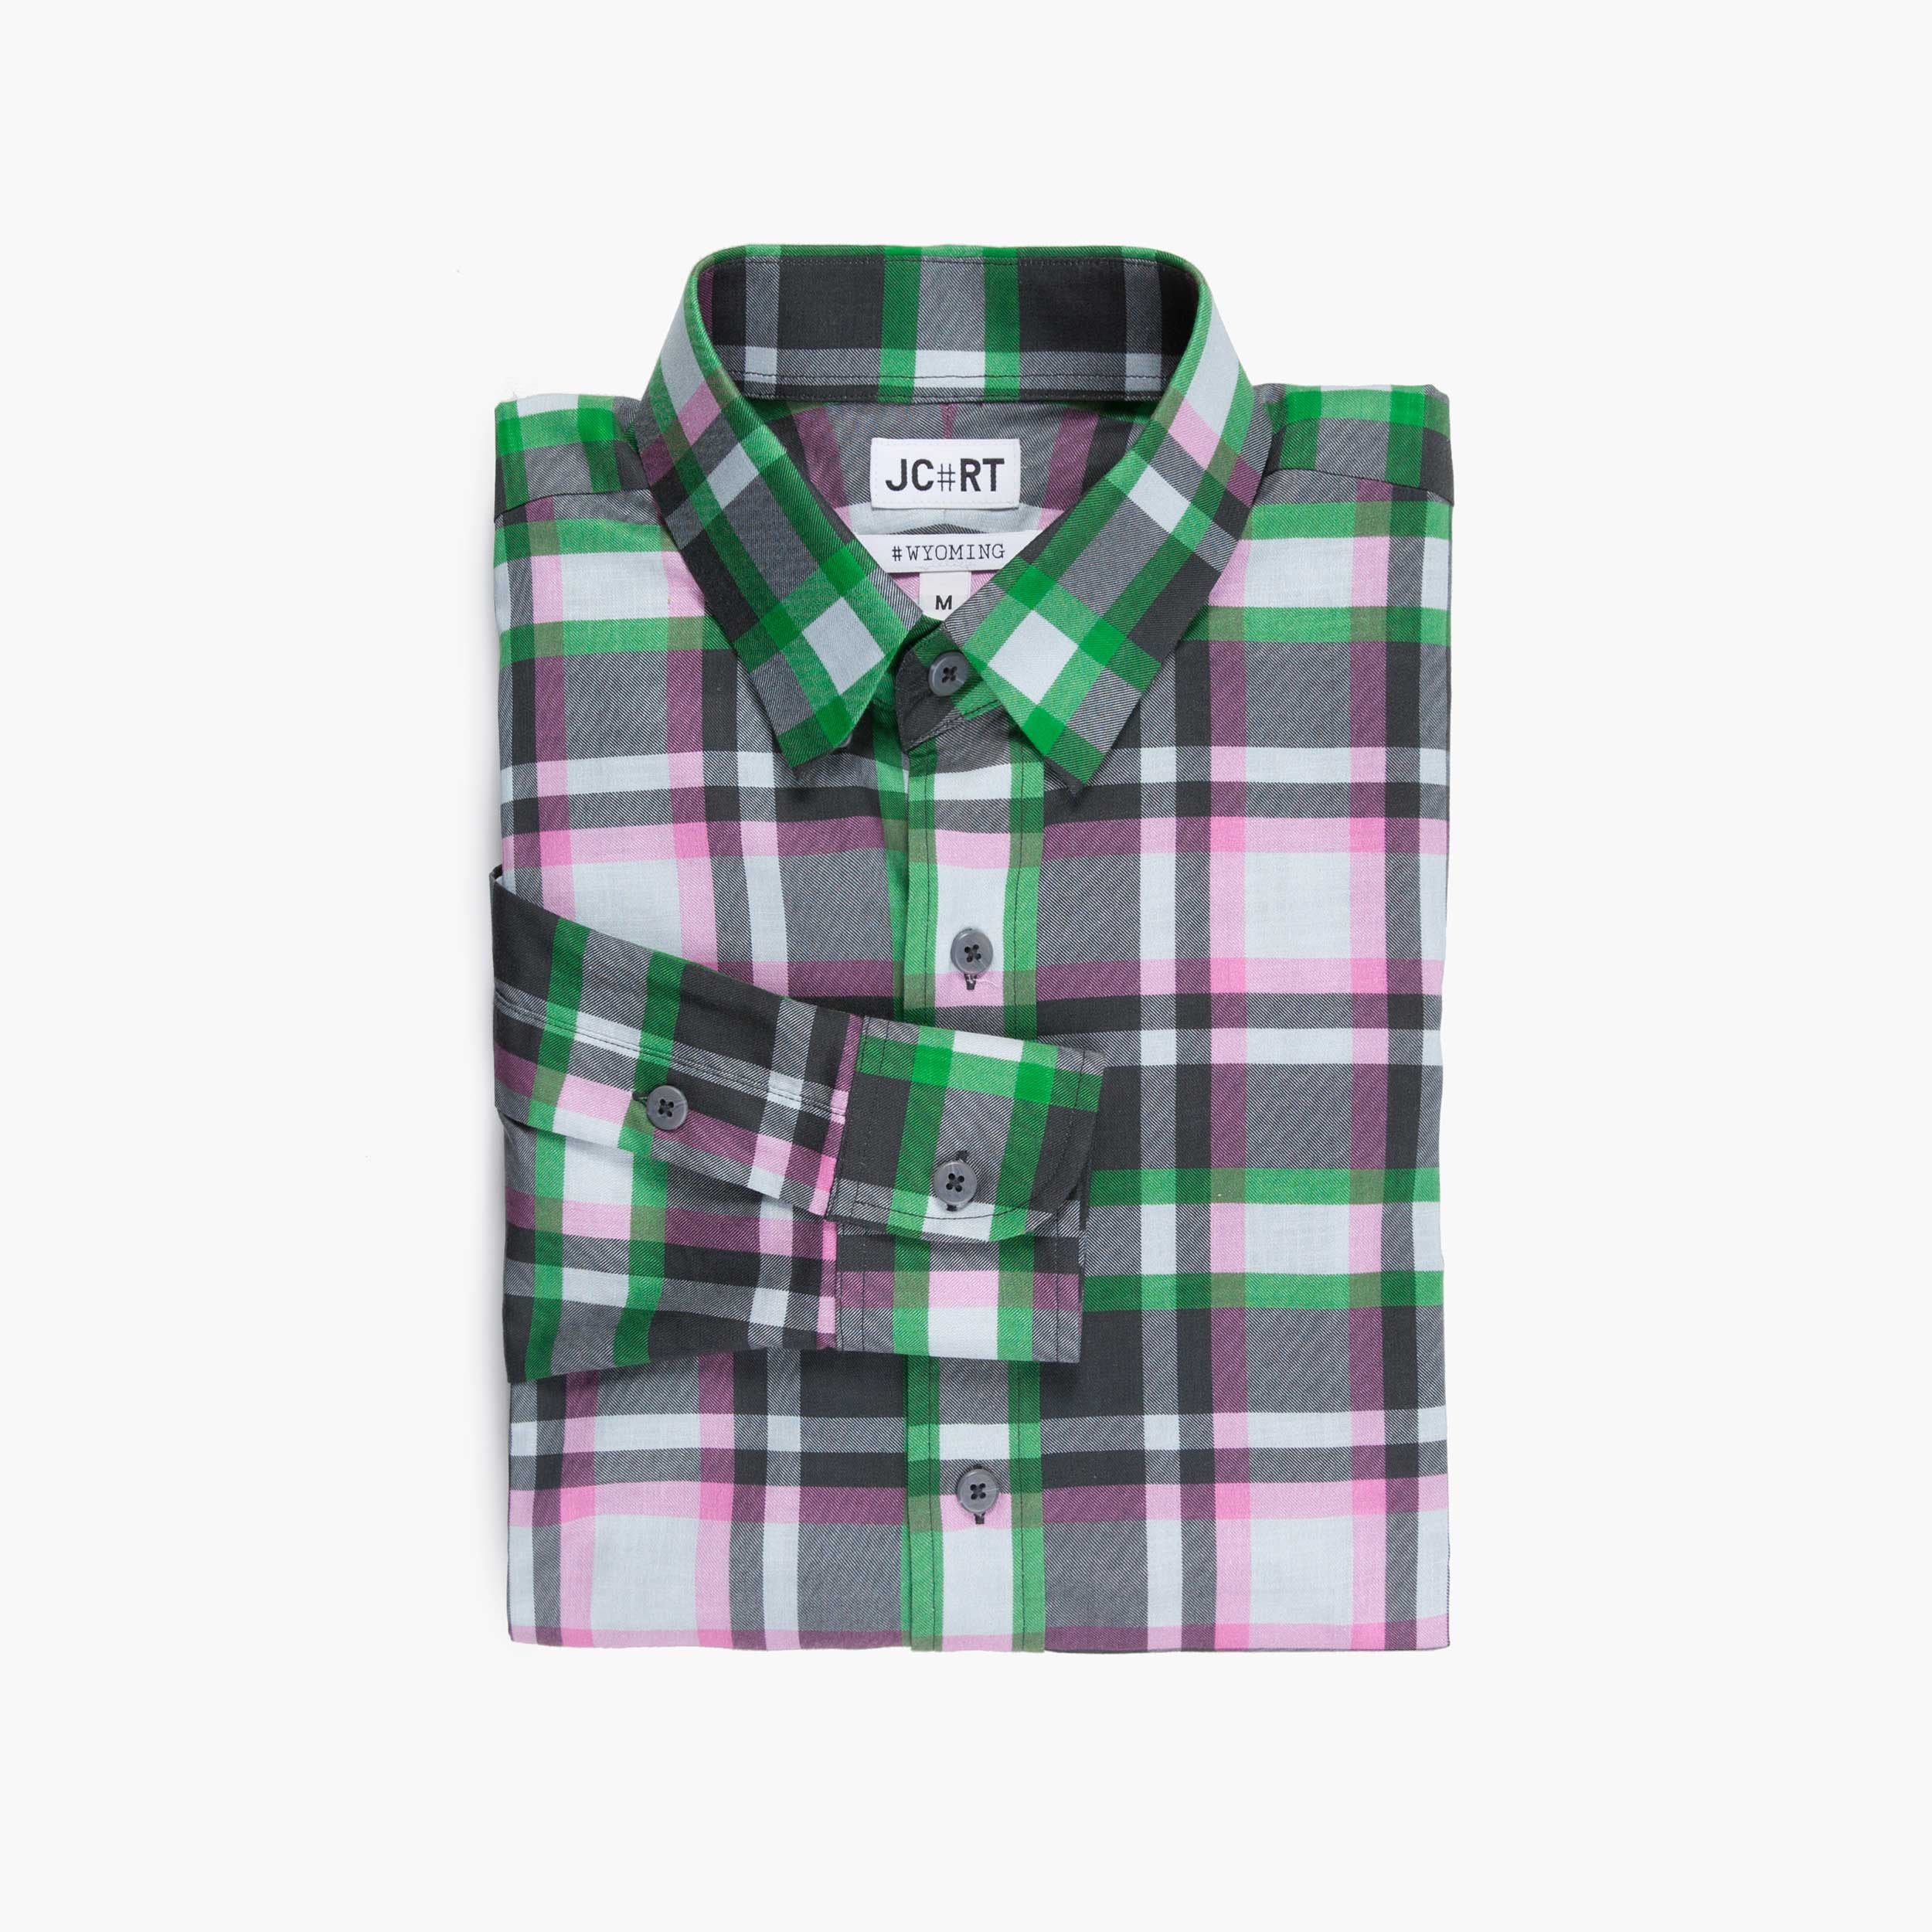 The London Calling Plaid Shirt